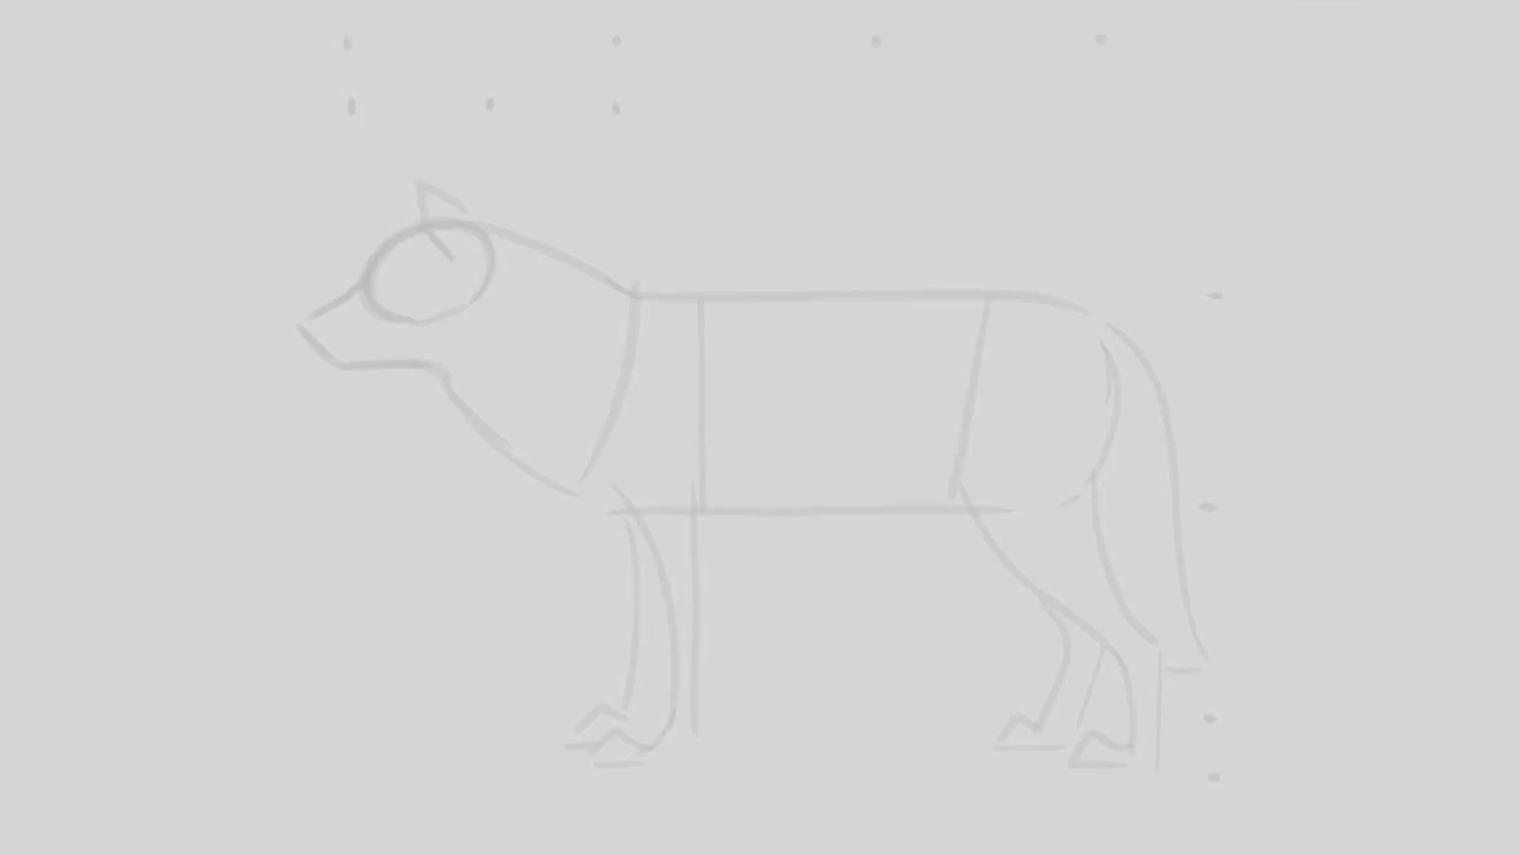 Sketched outline of a wolf